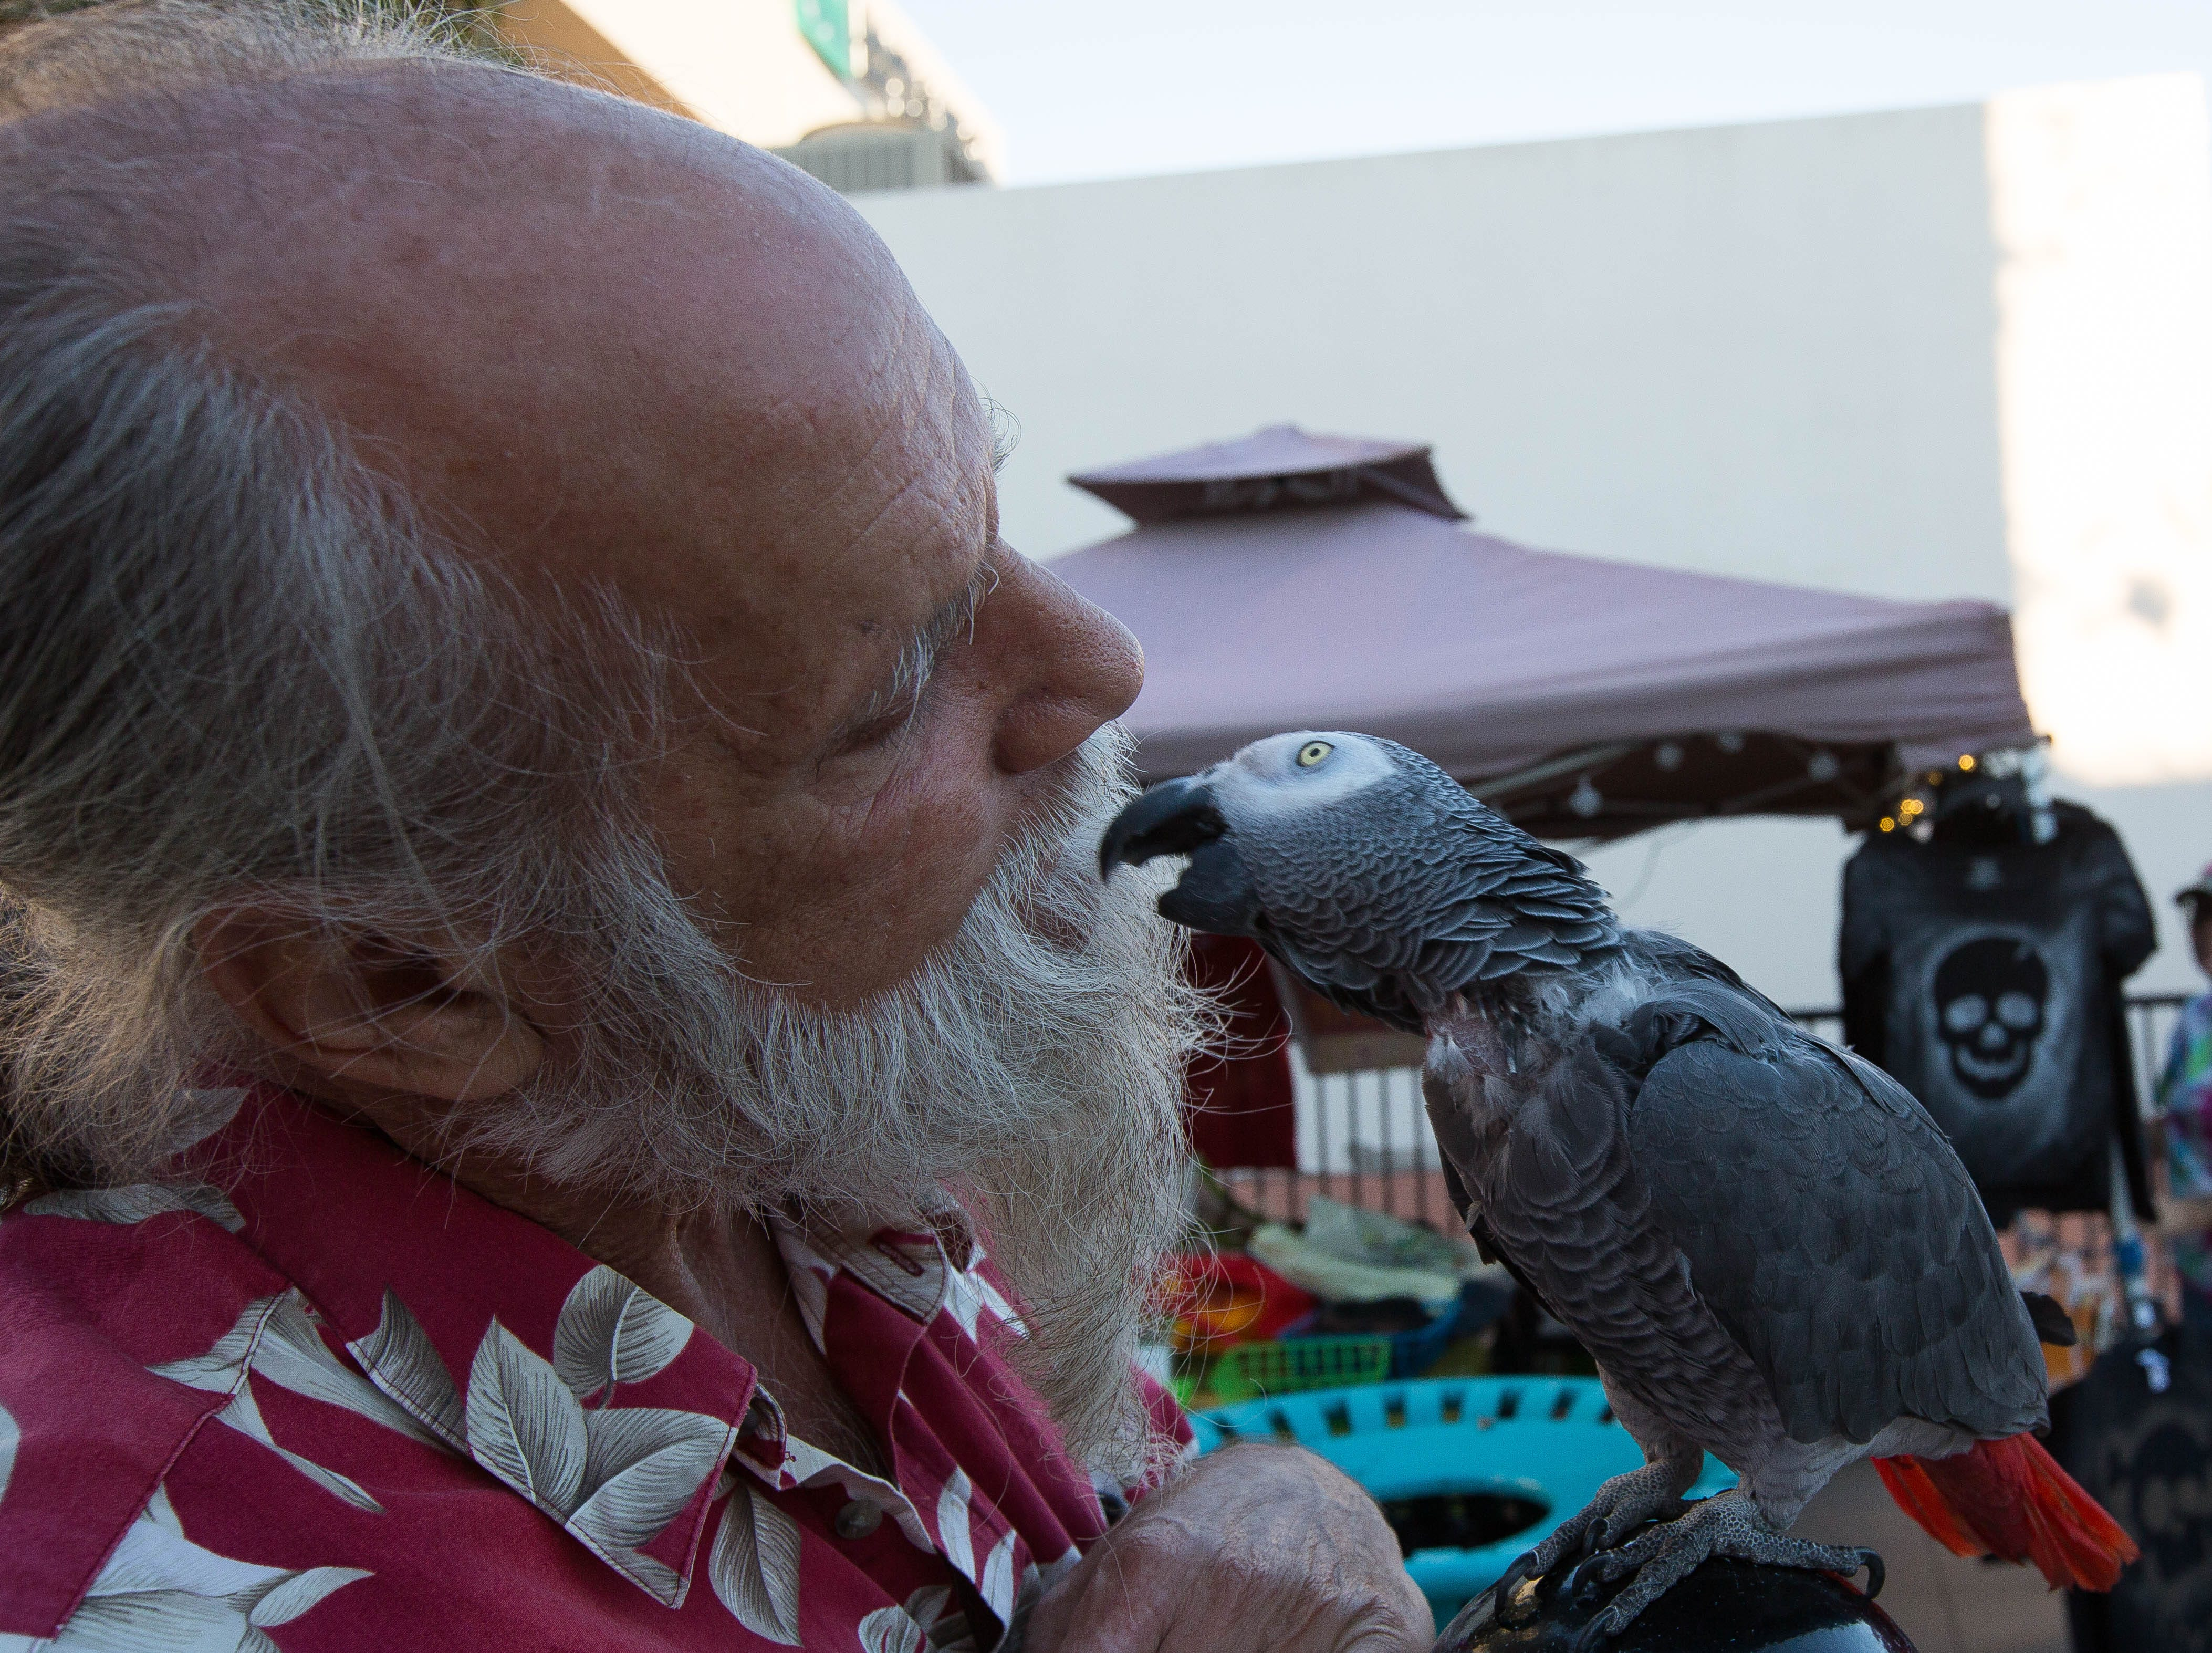 Chris Van Inga, gives a kiss to his parrot Phinneas, during the Farmers Market Fall Festival, Wednesday October 24, 2018.